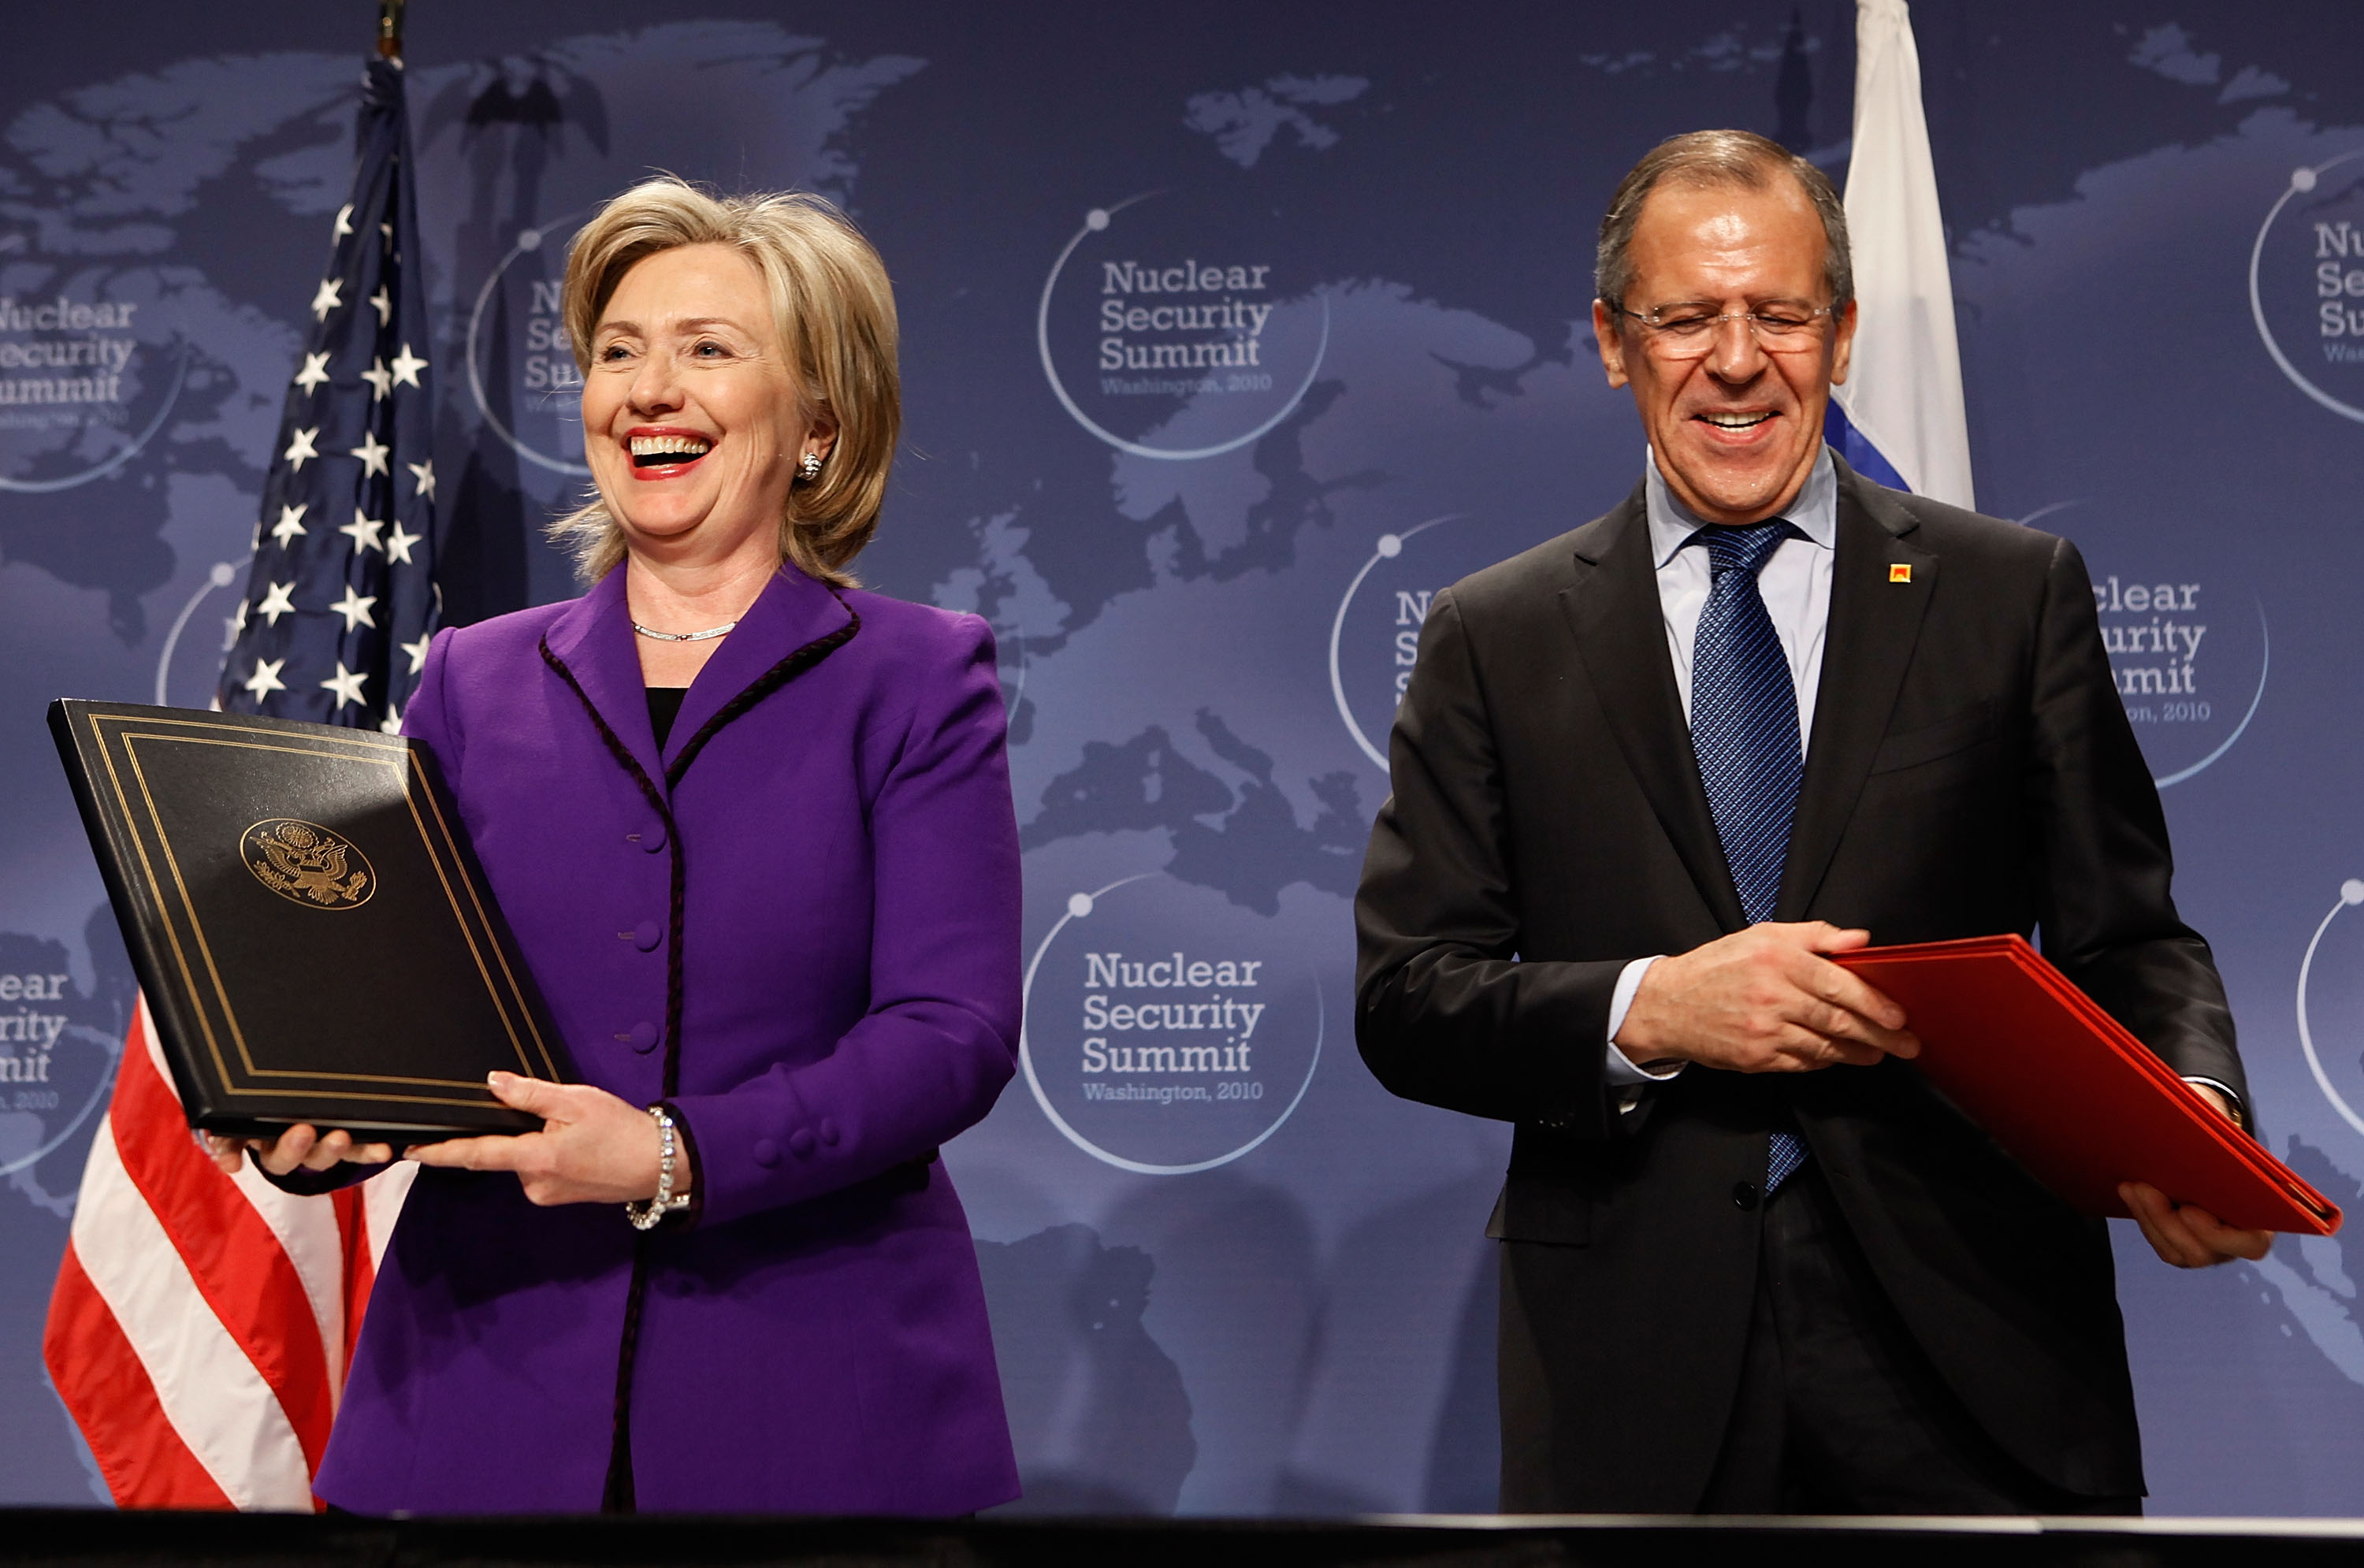 WASHINGTON - APRIL 13: U.S. Secretary of State Hillary Rodham Clinton (L) and Russian Foreign Minister Sergey Lavrov smile after signing an agreement on eliminating excess weapon-grade plutonium from their defense programs during the Nuclear Safety Summit at the Washington Convention Center April 13, 2010 in Washington, DC. Clinton said the irreversable process of desposing of each countries excess weapon-grade plutonium, enough material for several thousand nuclear weapons, will prevent it from falling into the hands of terrorists. (Photo by Chip Somodevilla/Getty Images)